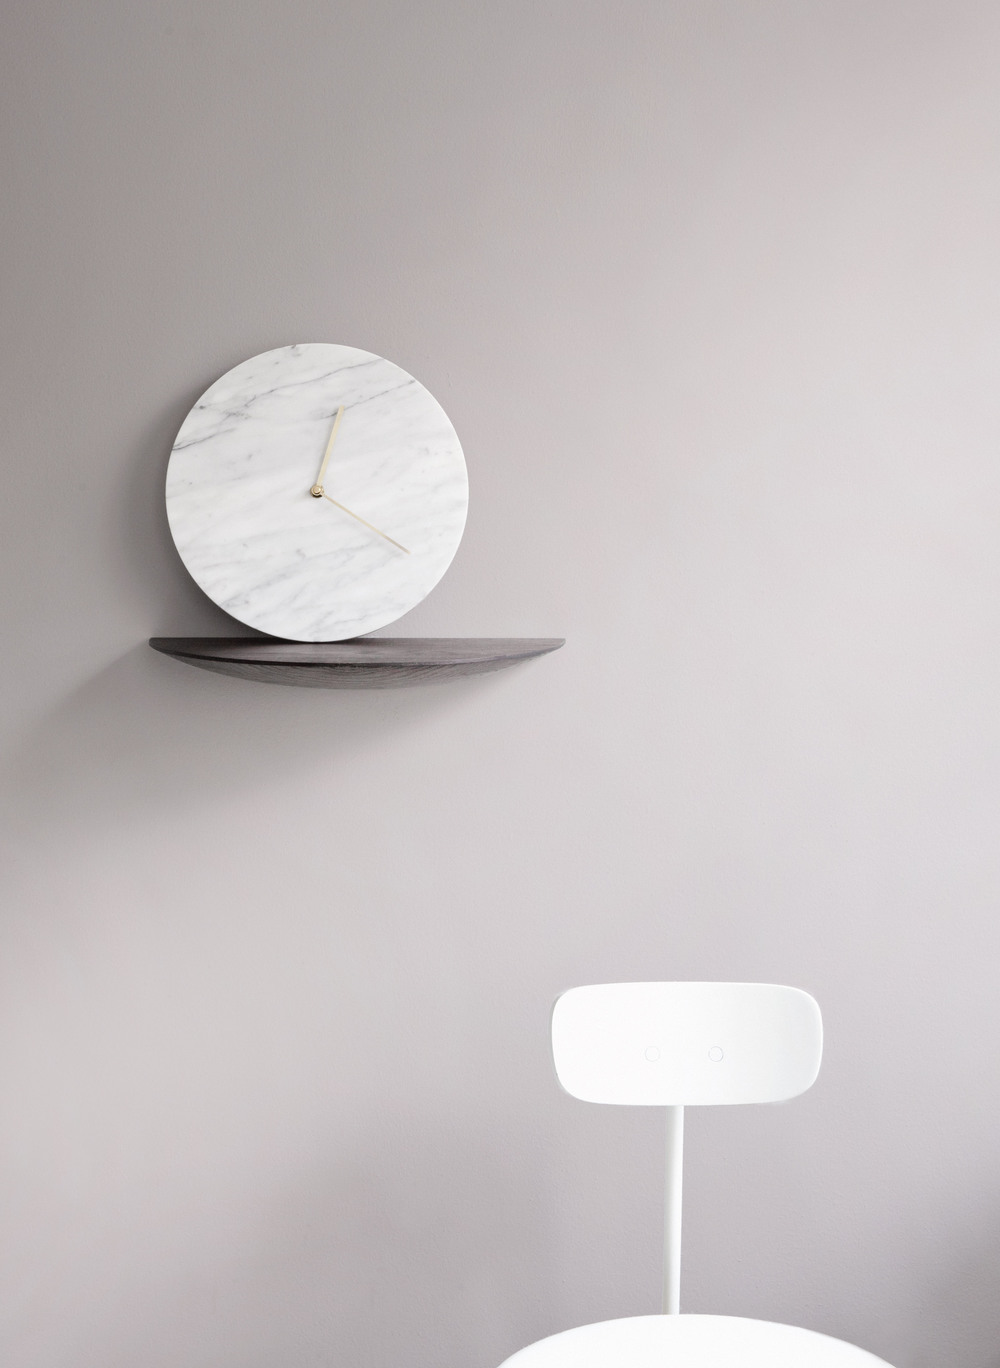 Marble Wall Clock. Design by: Norm Architect.